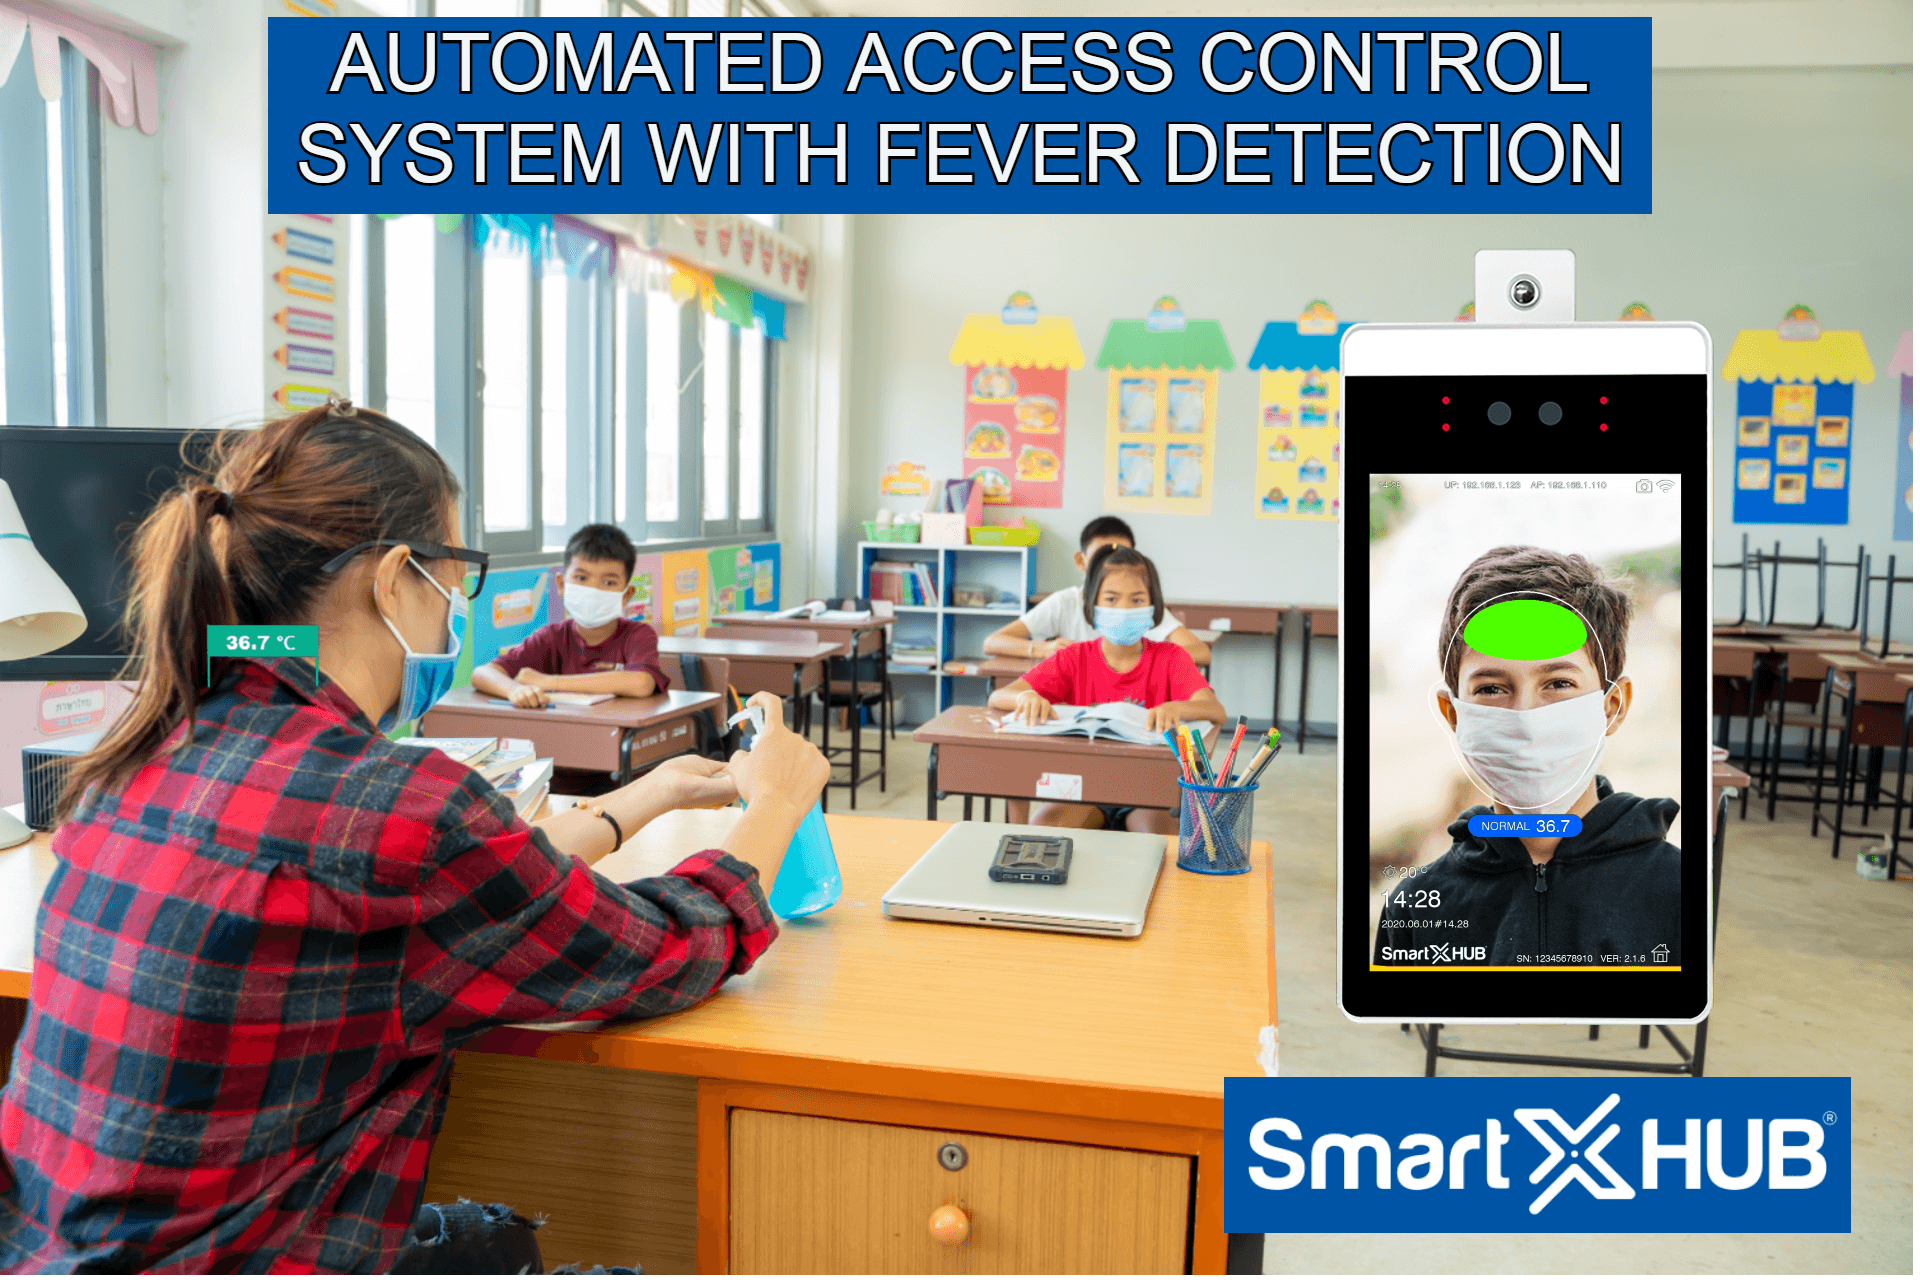 Get exclusive insights to increase your school's safety and performance